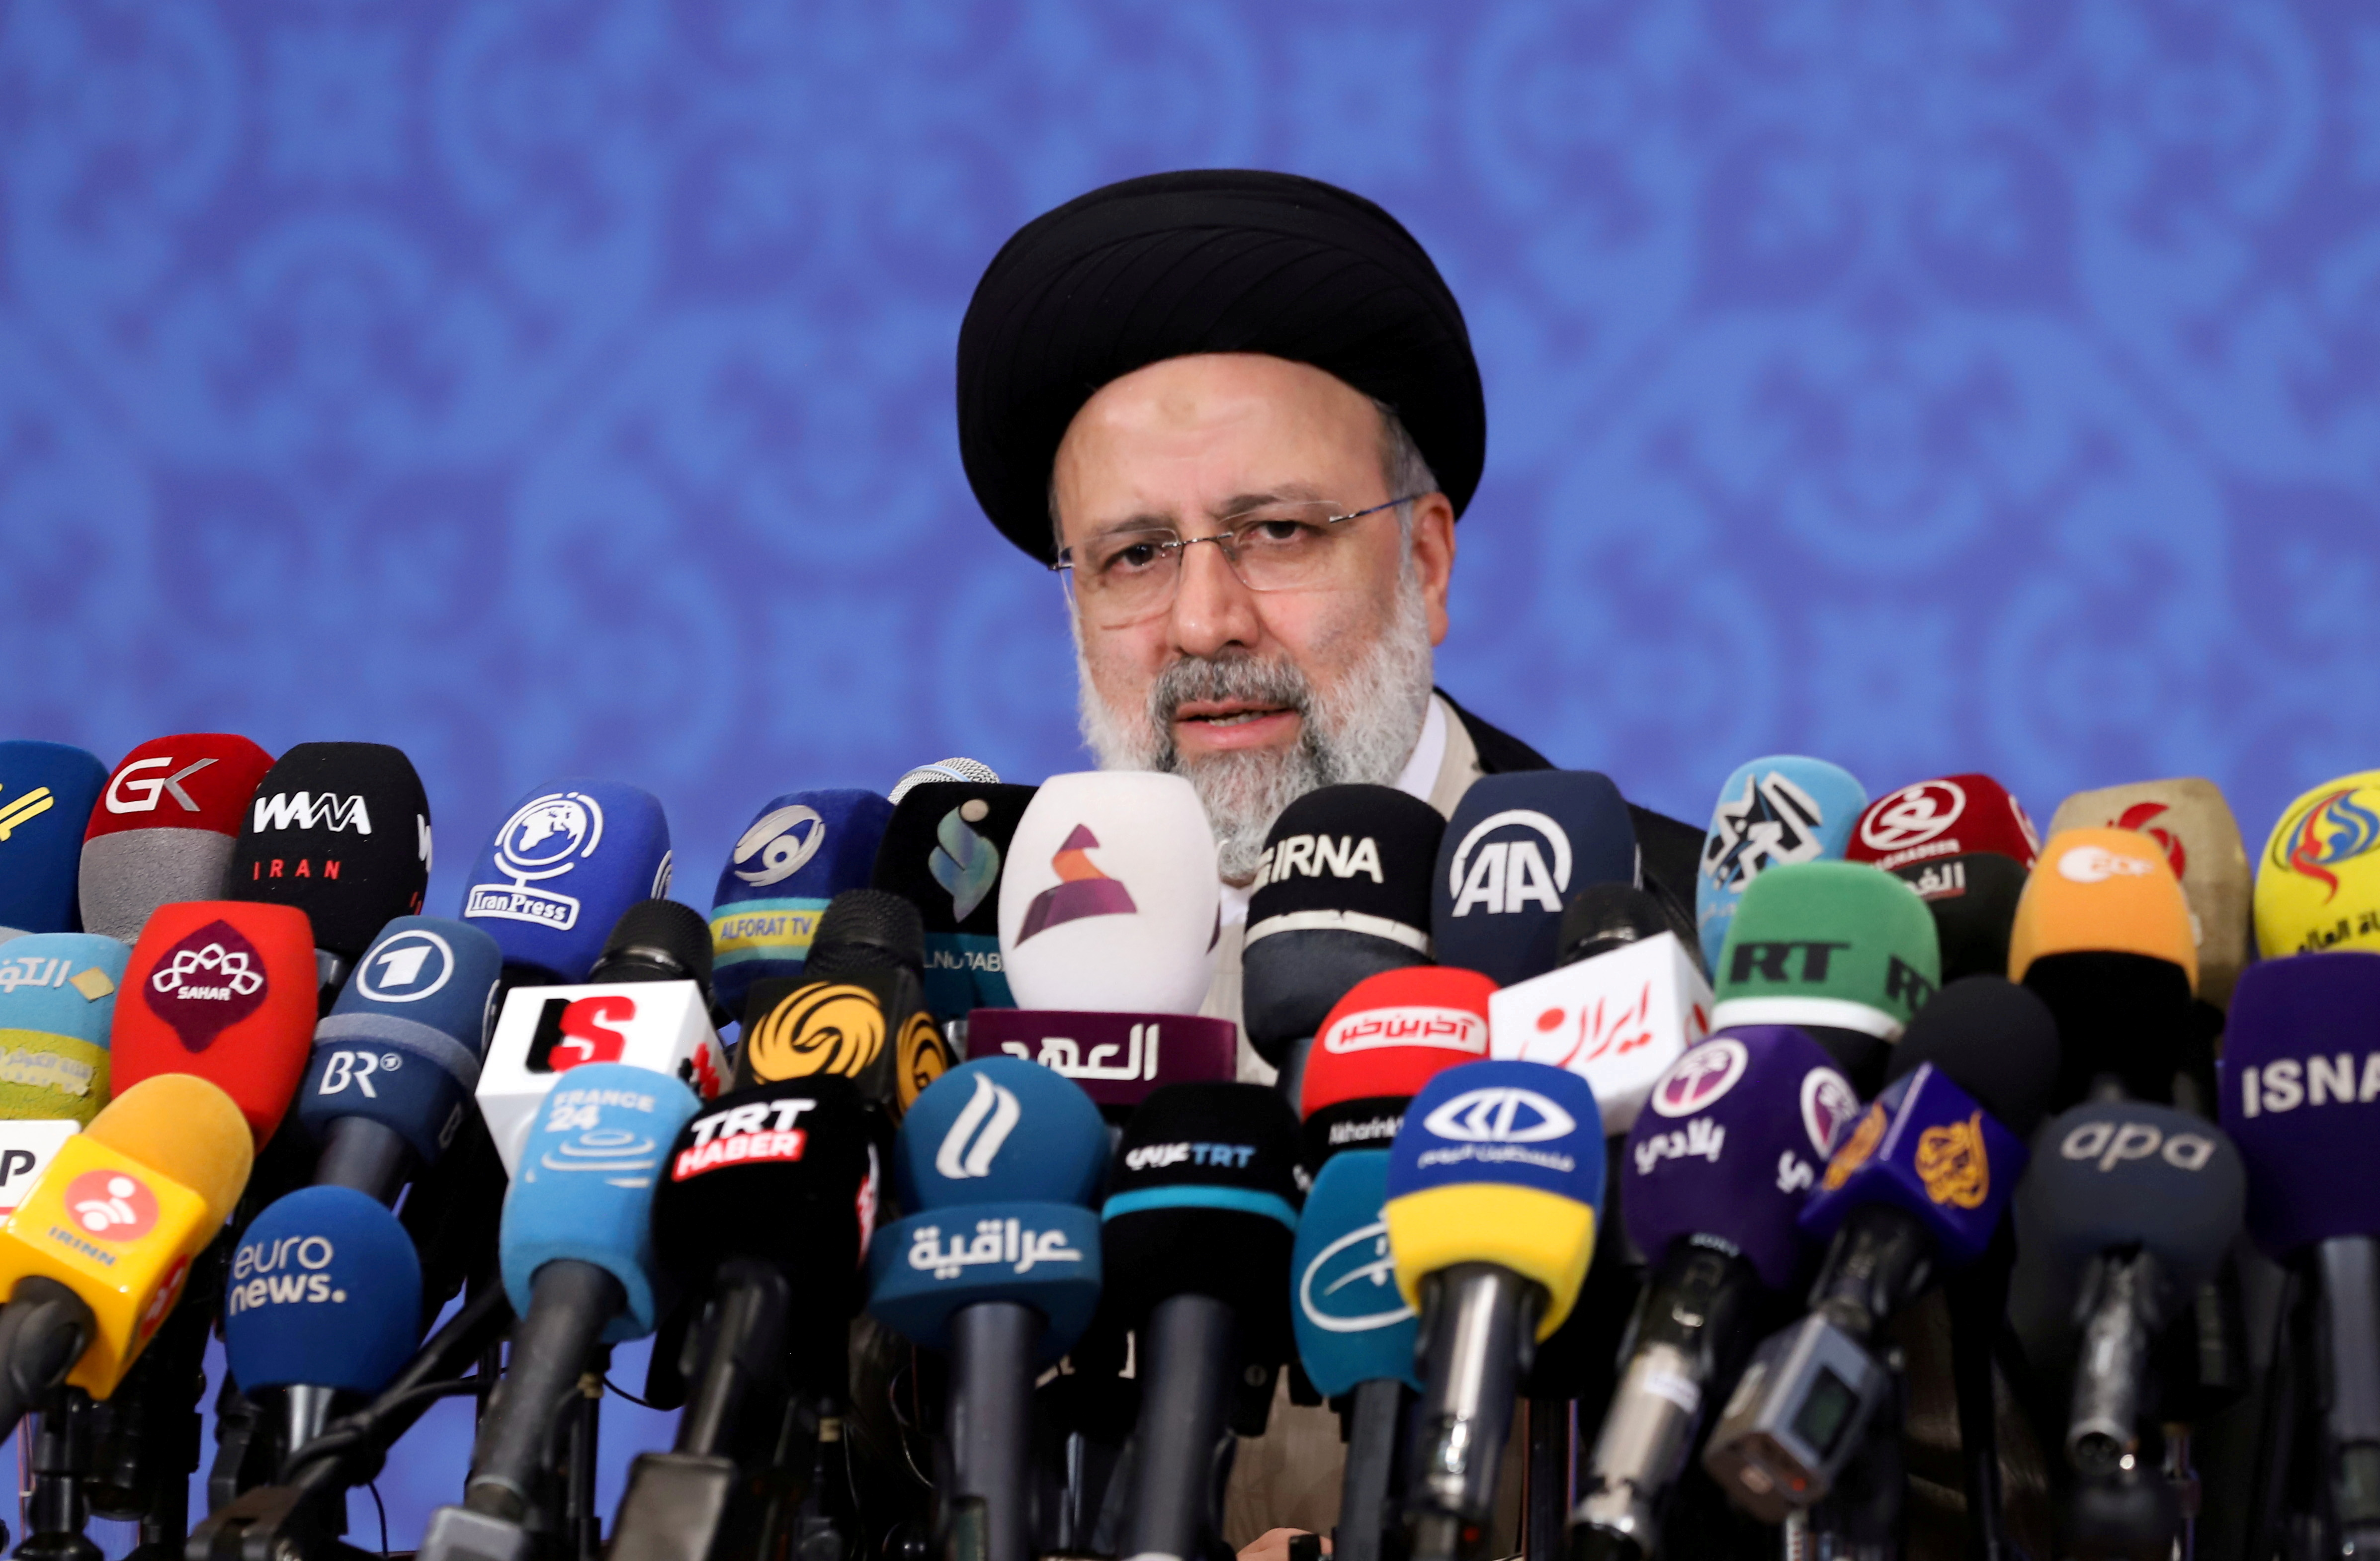 Ebrahim Raisi, who assumed office as Iran's president this month, speaks during a news conference in Tehran, Iran June 21, 2021. Majid Asgaripour/WANA (West Asia News Agency) via REUTERS